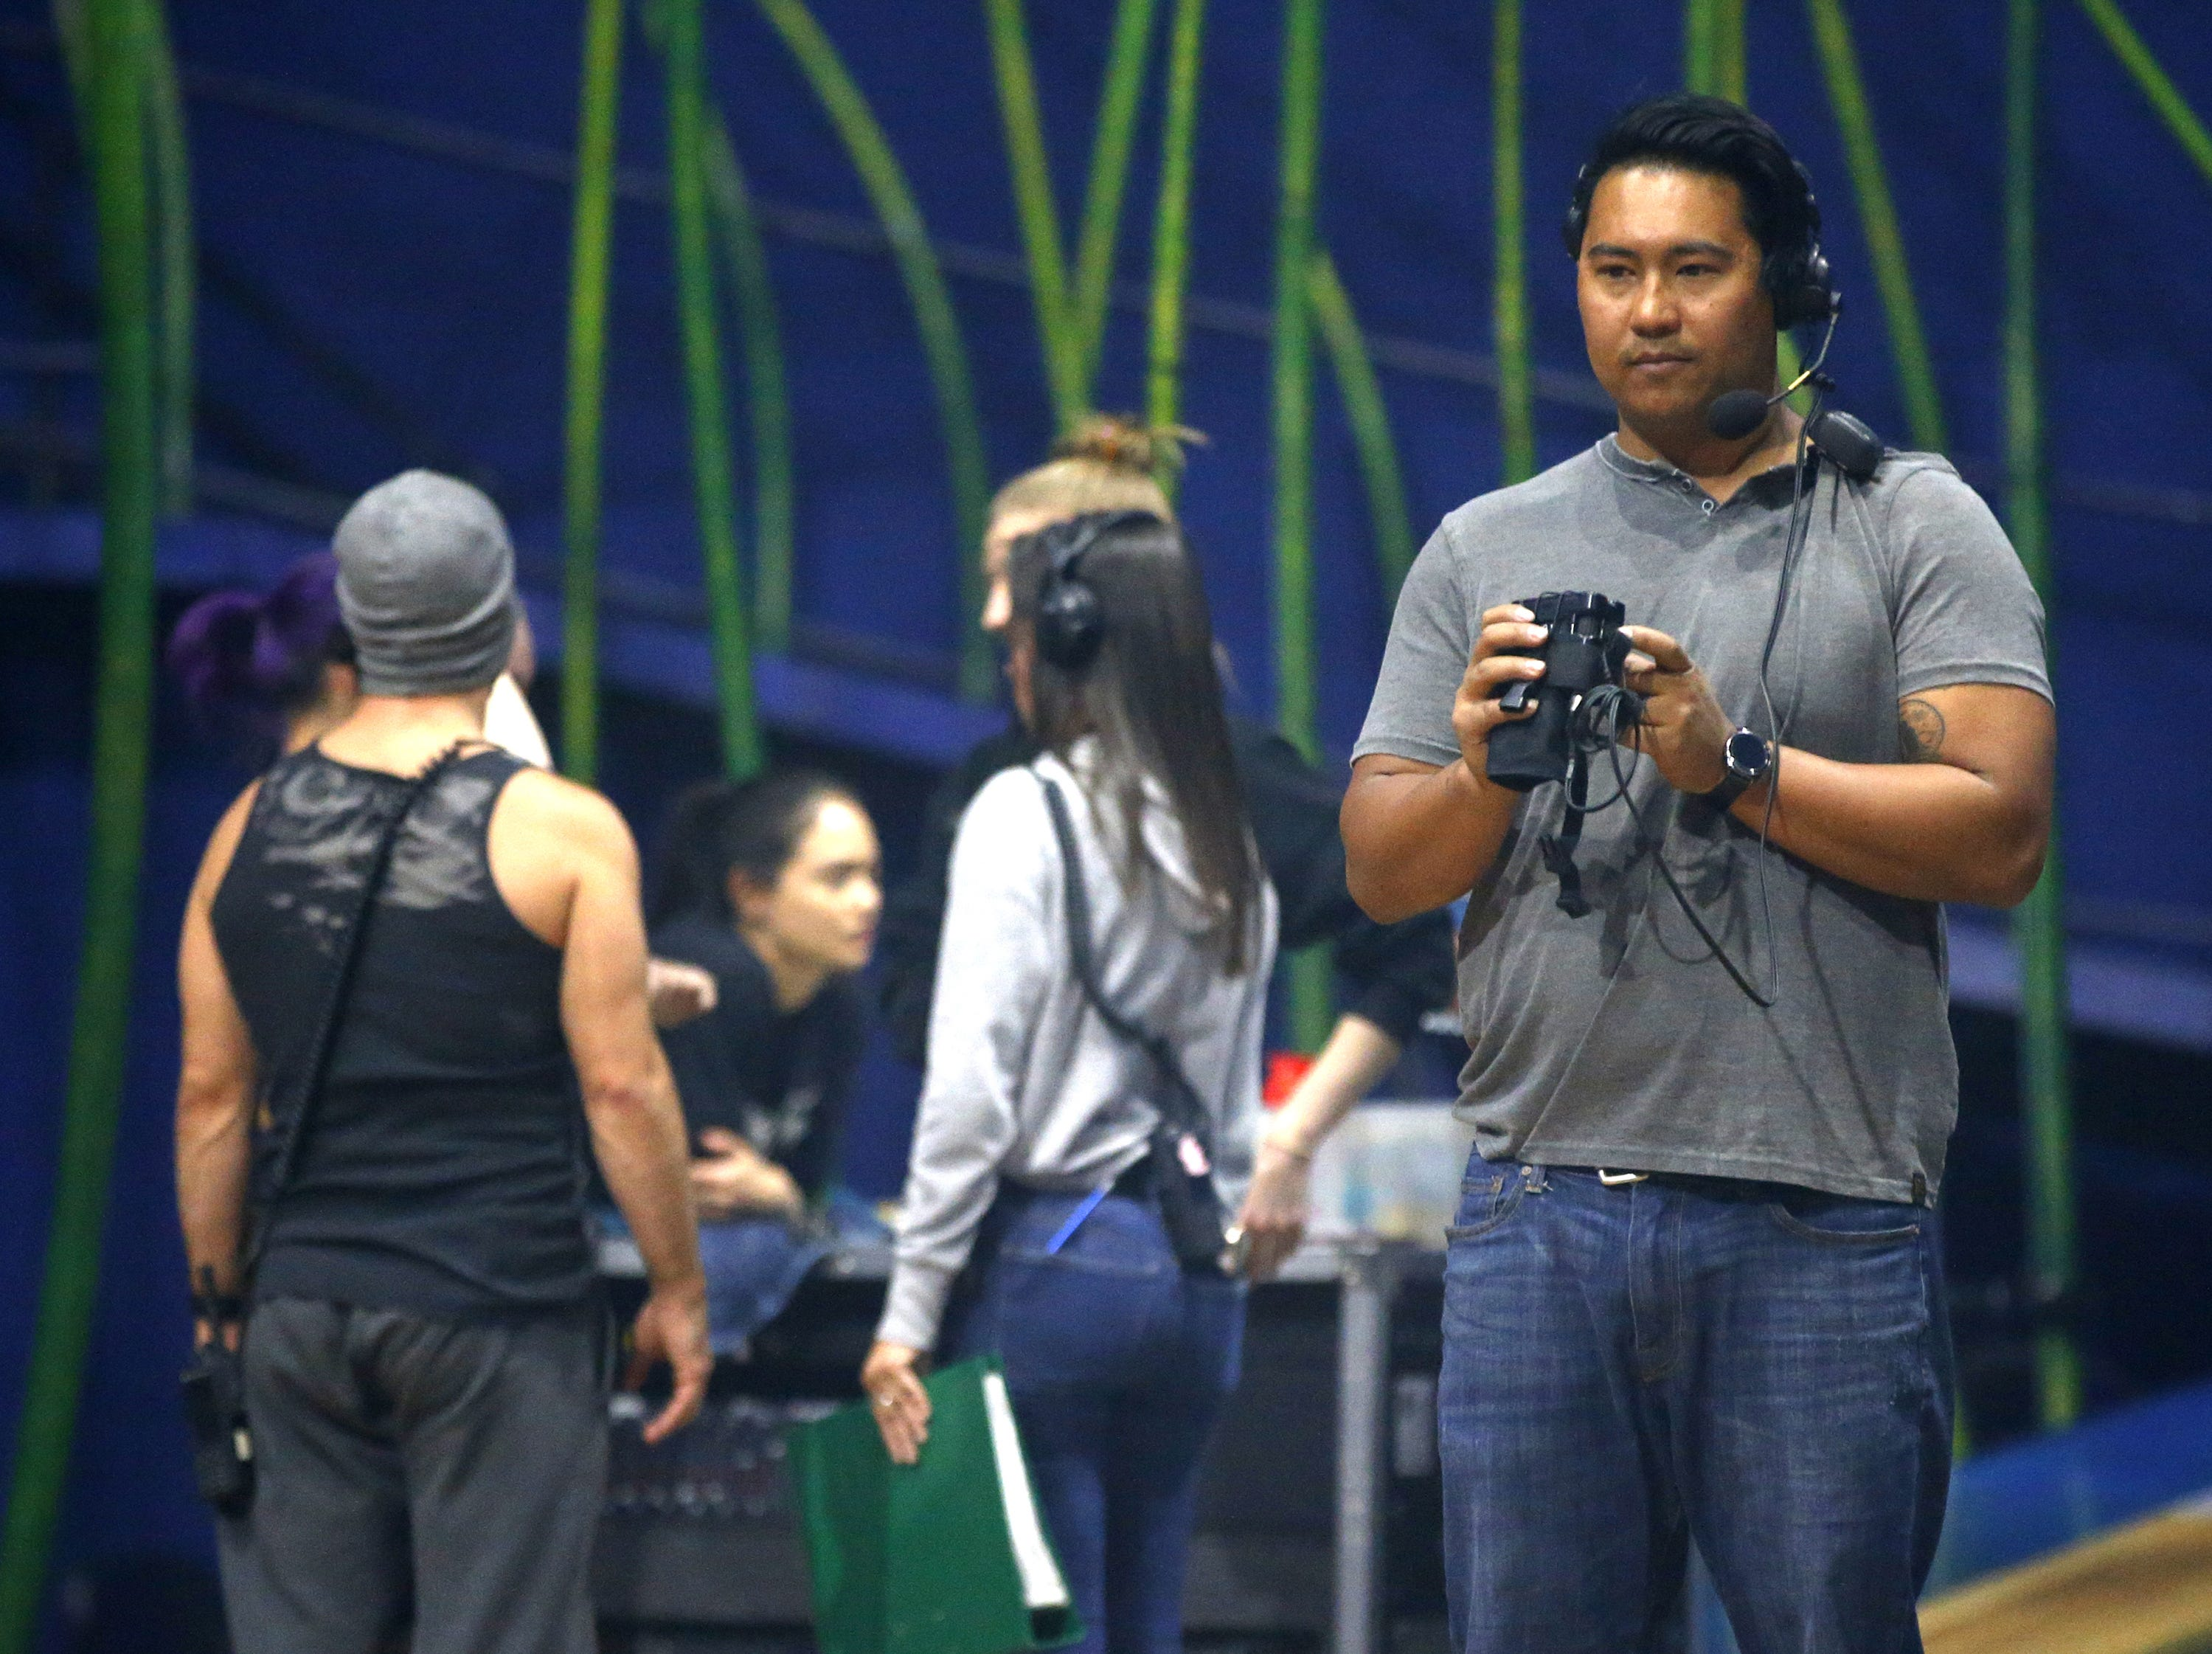 Emille Morales, head of rigging for Cirque du Soleil's big-top show Amaluna, checks equipment at State Farm Stadium in Glendale.